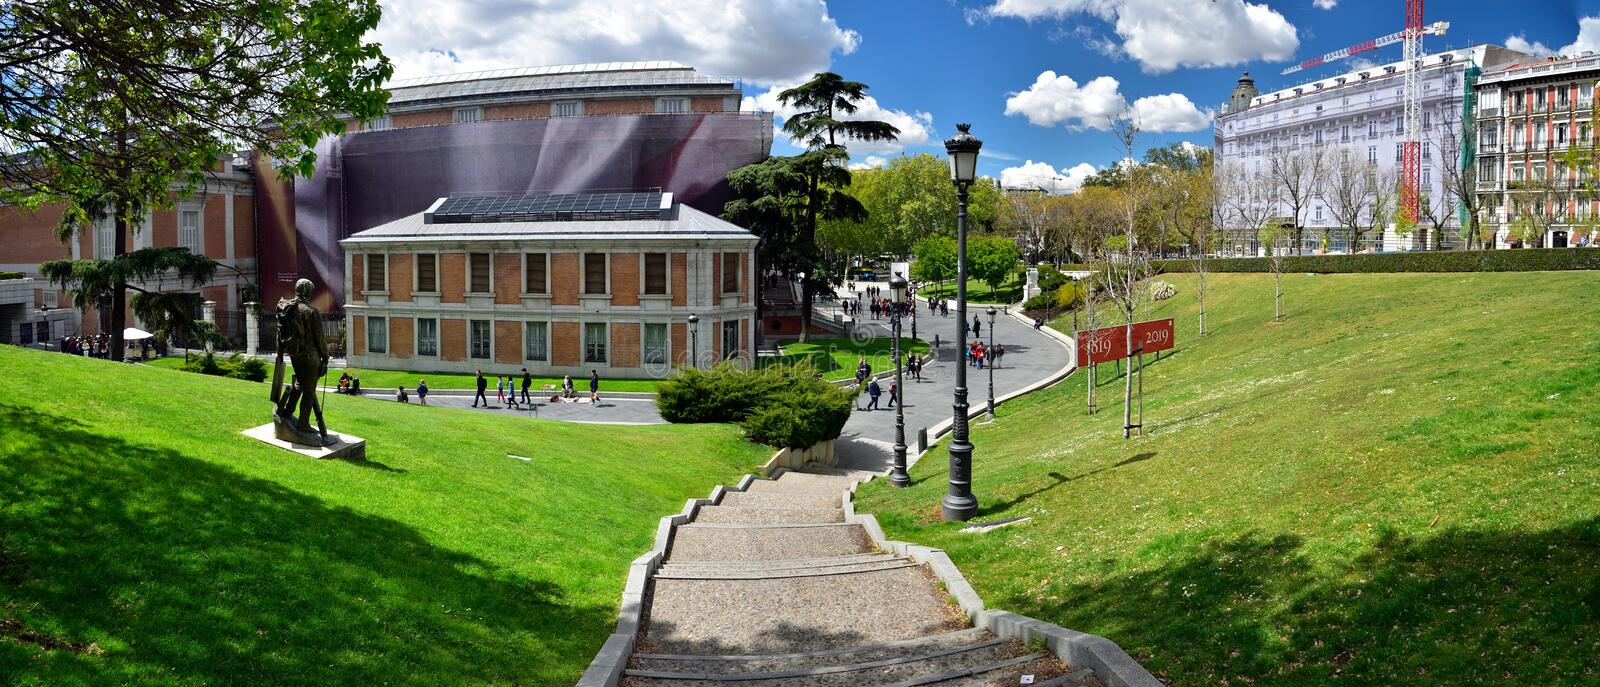 A stairs leading to the Prado Museum a major cultural landmark in Madrid. MADRID / SPAIN - APRIL 11, 2019 - Stairs leading to the Prado Museum a major cultural royalty free stock photos